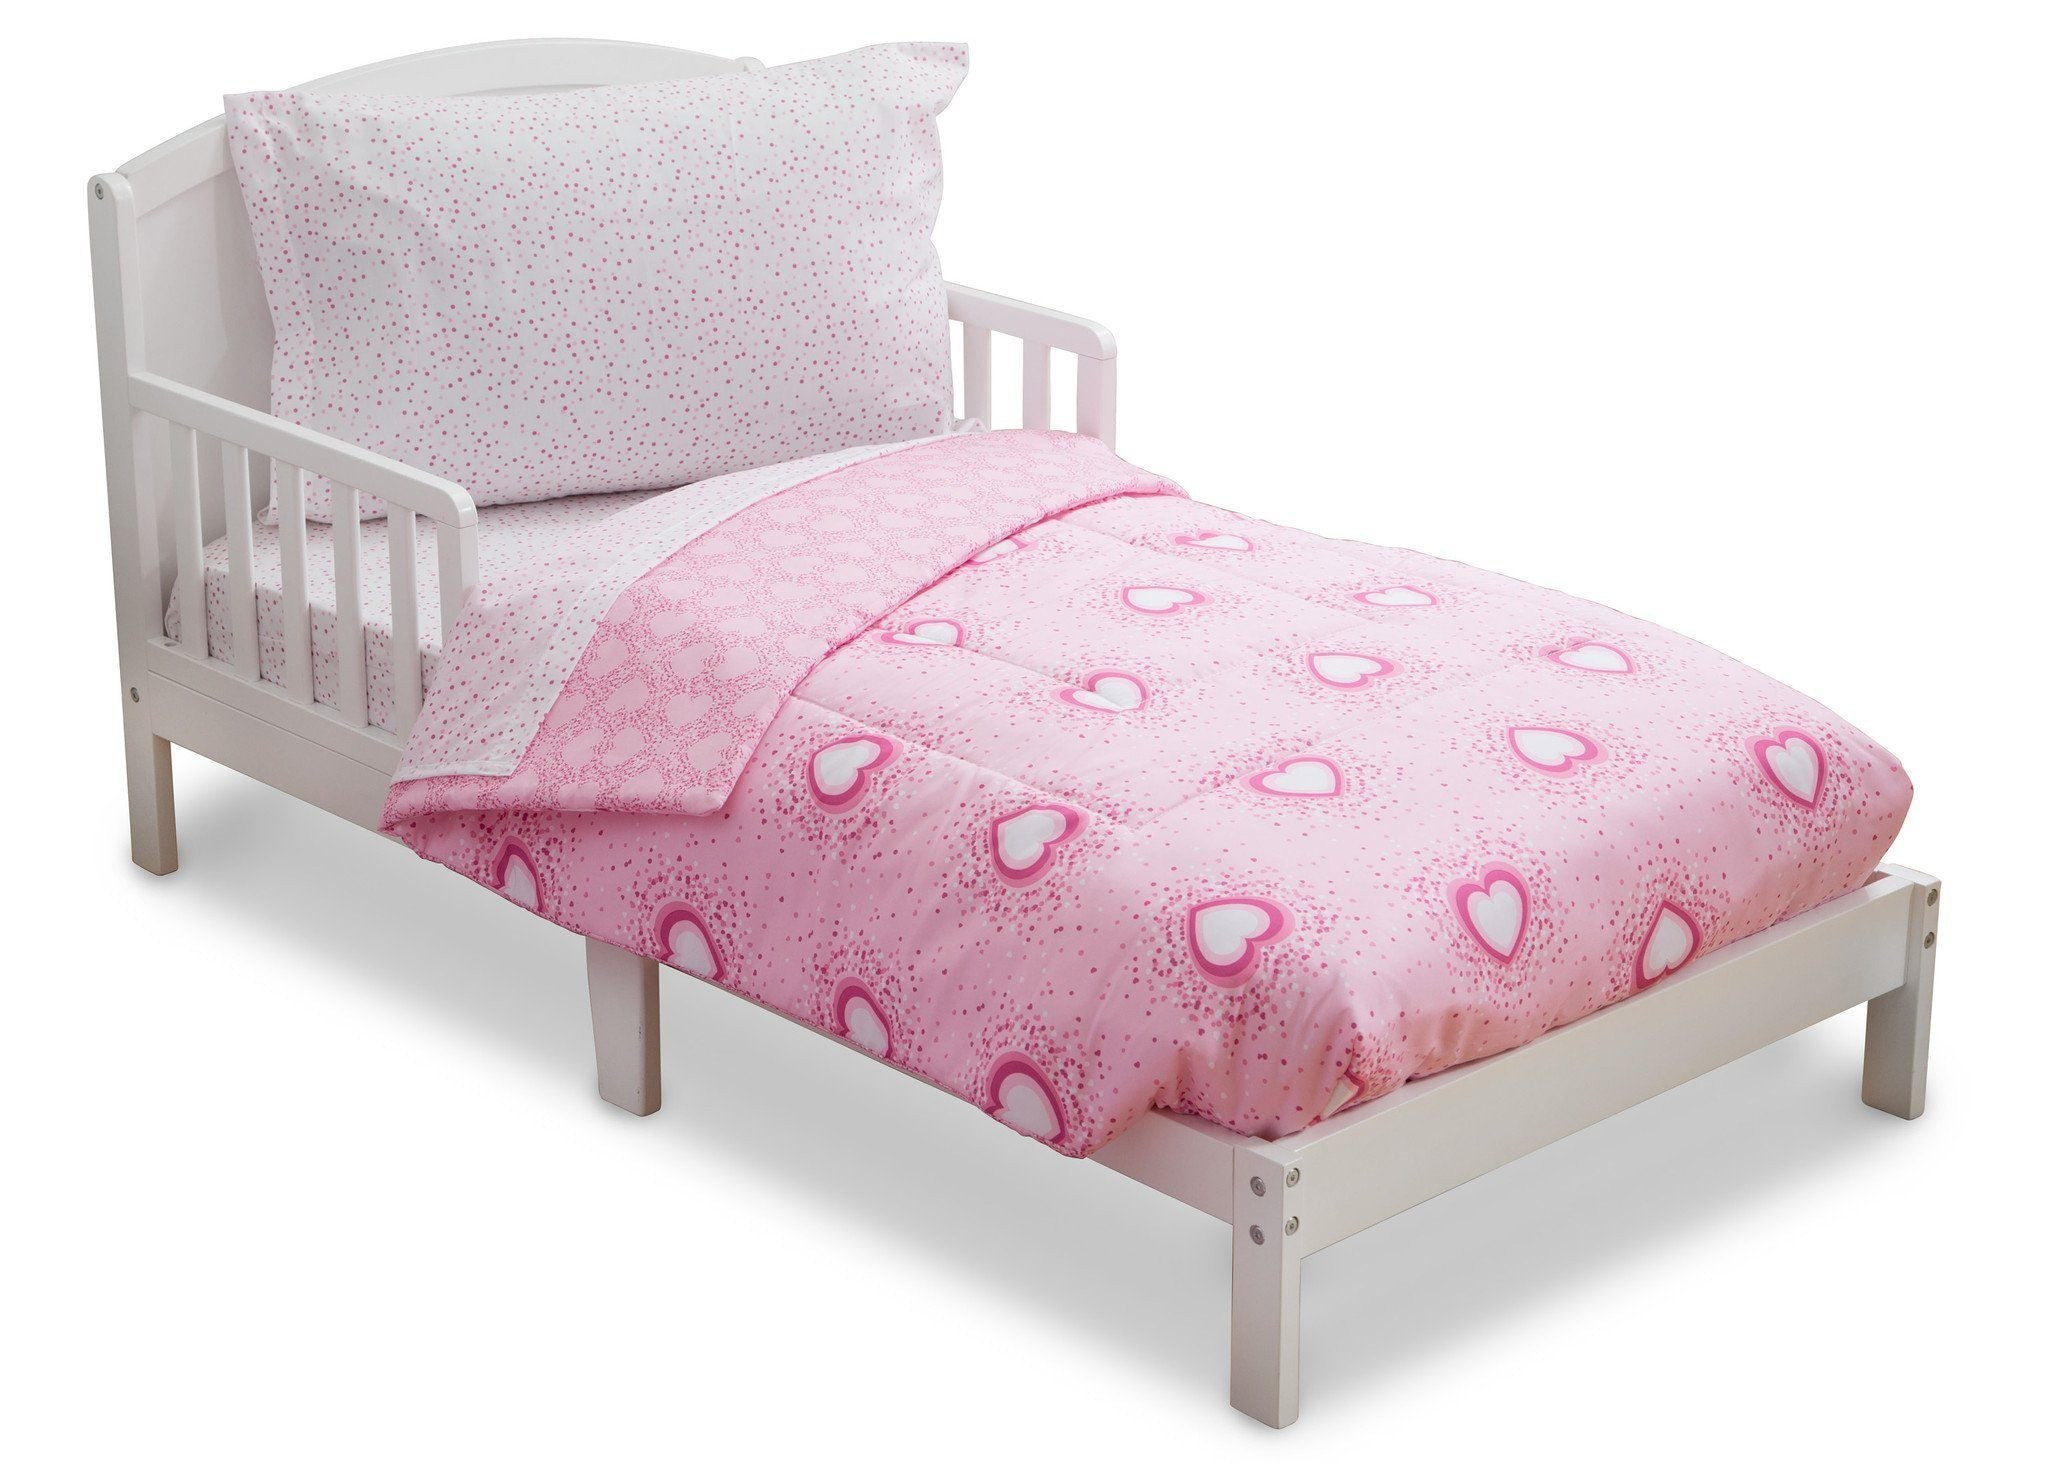 Girl 4-Piece Toddler Bedding Set, Hearts & Sprinkles (2002) b3b